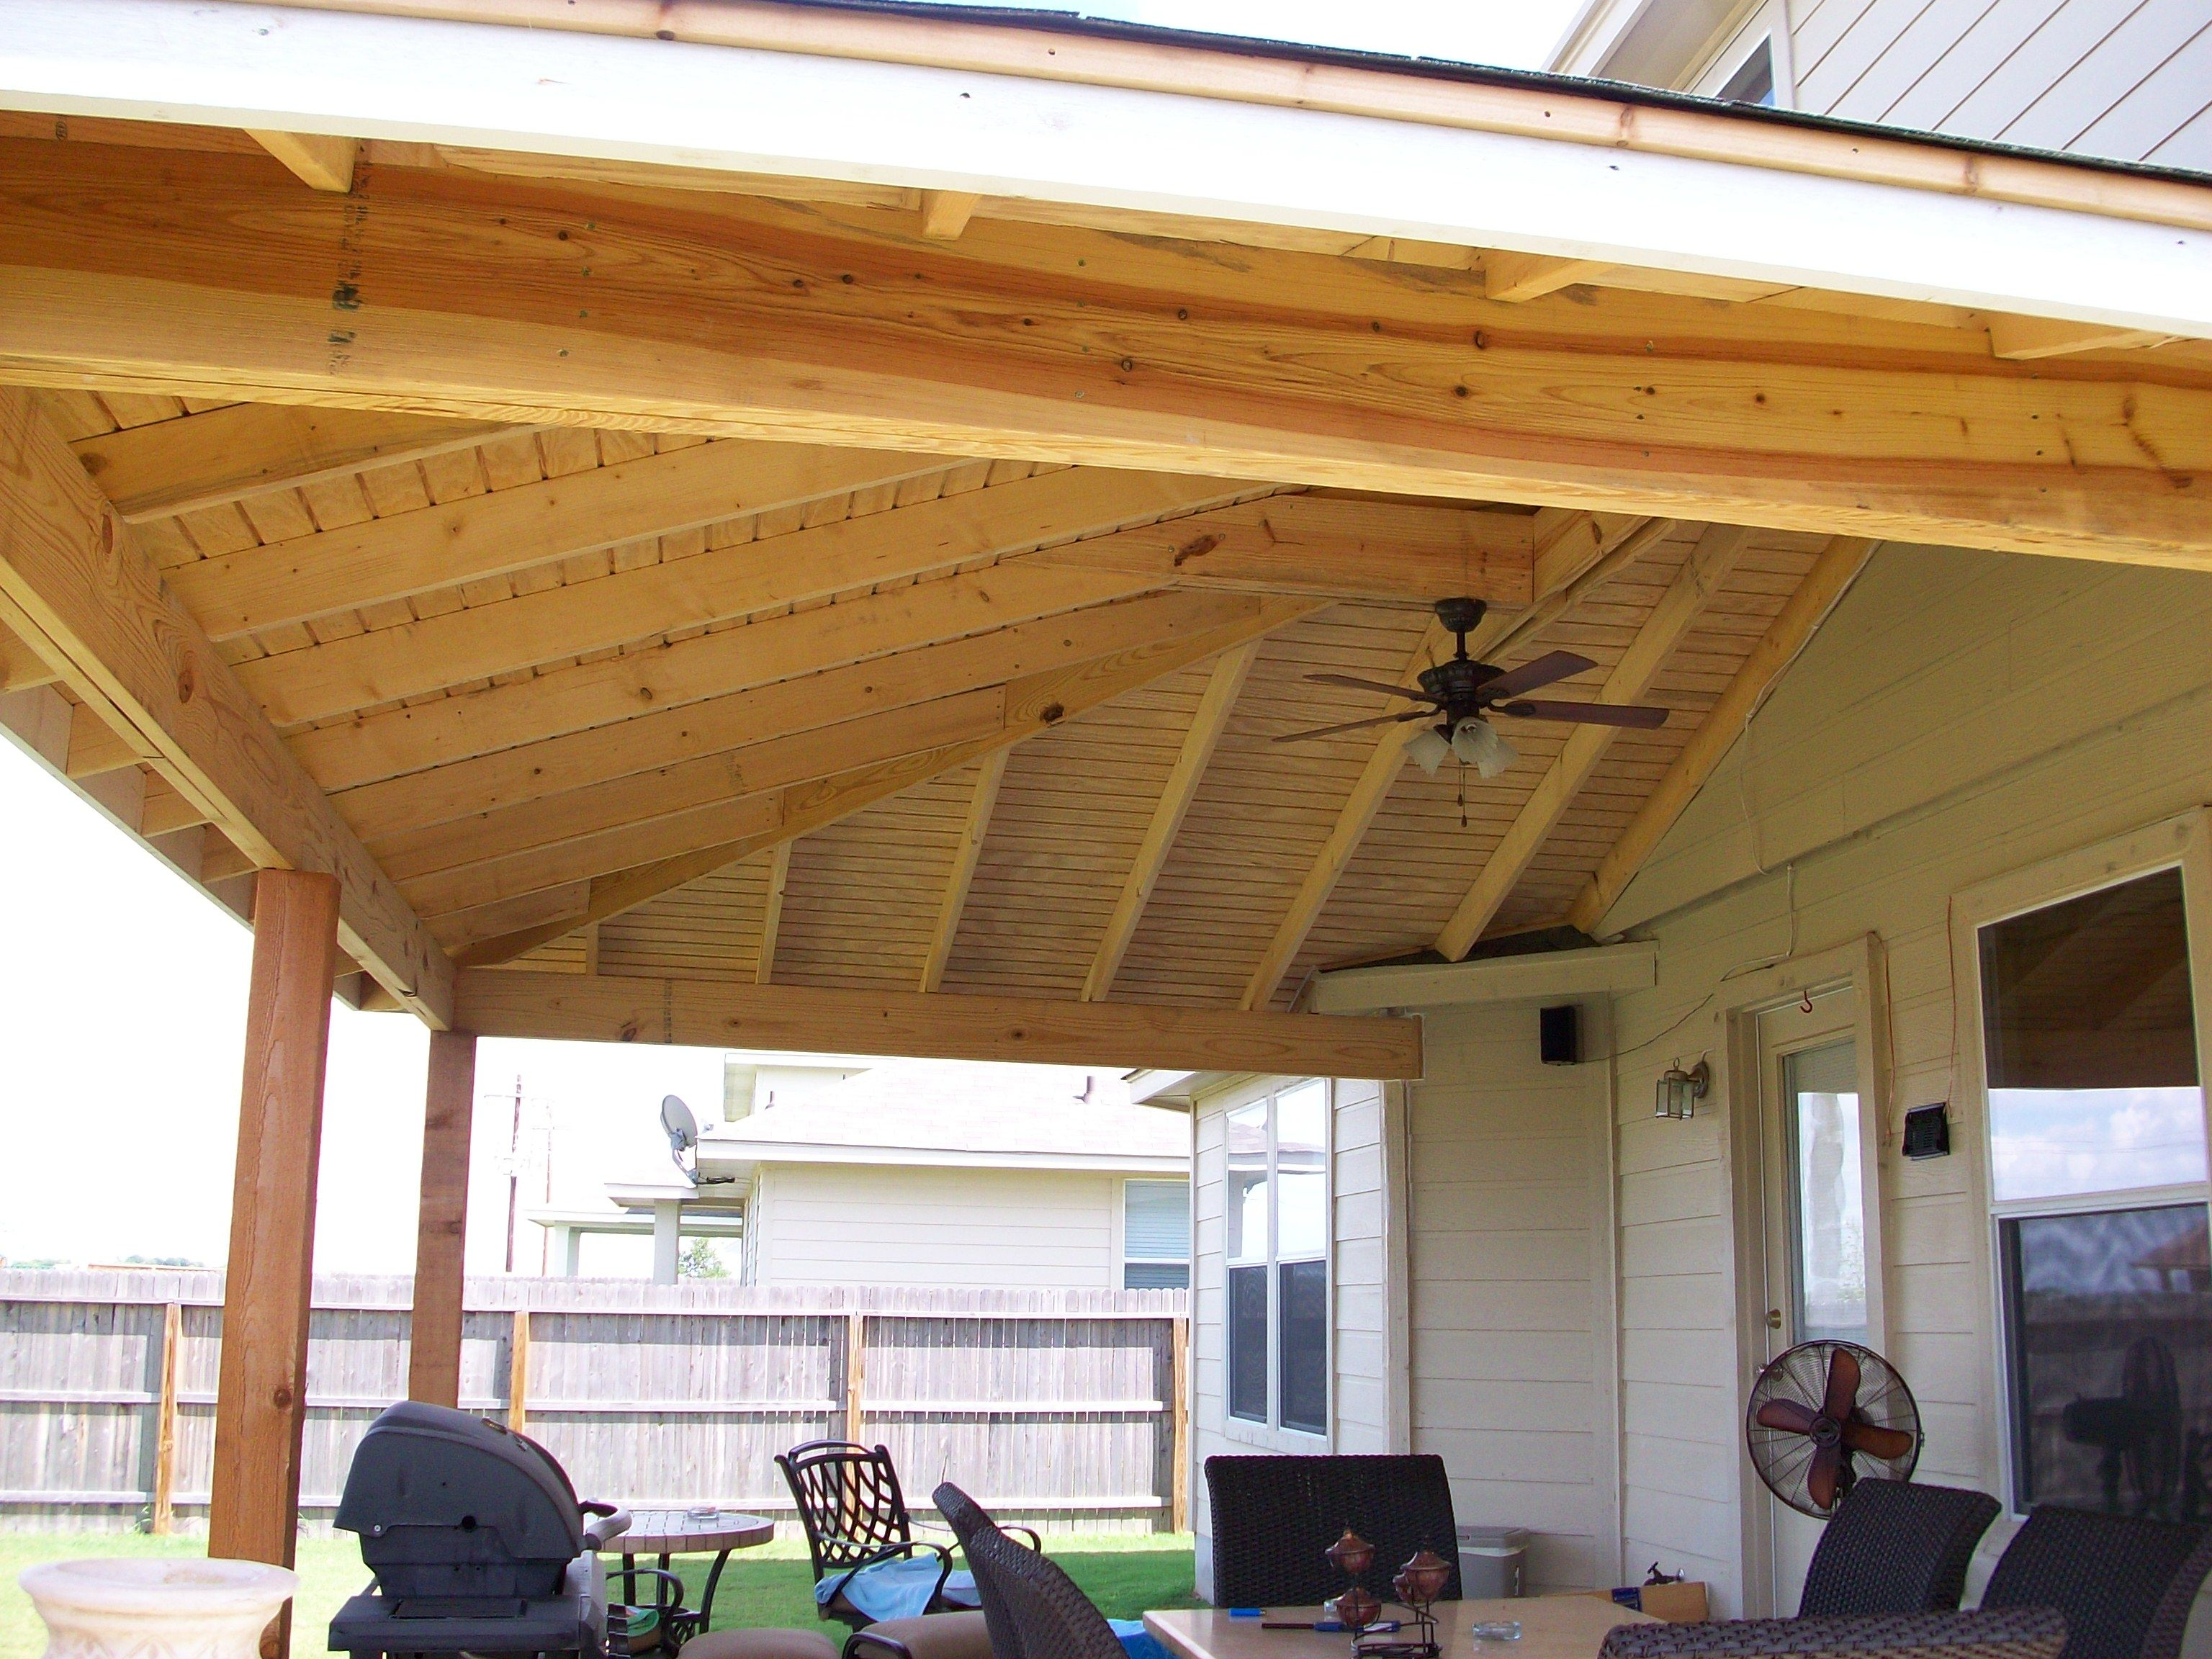 Woodwork Plans Building Patio Cover Pdf Plans Hip Roof Design Covered Patio Design Roof Design